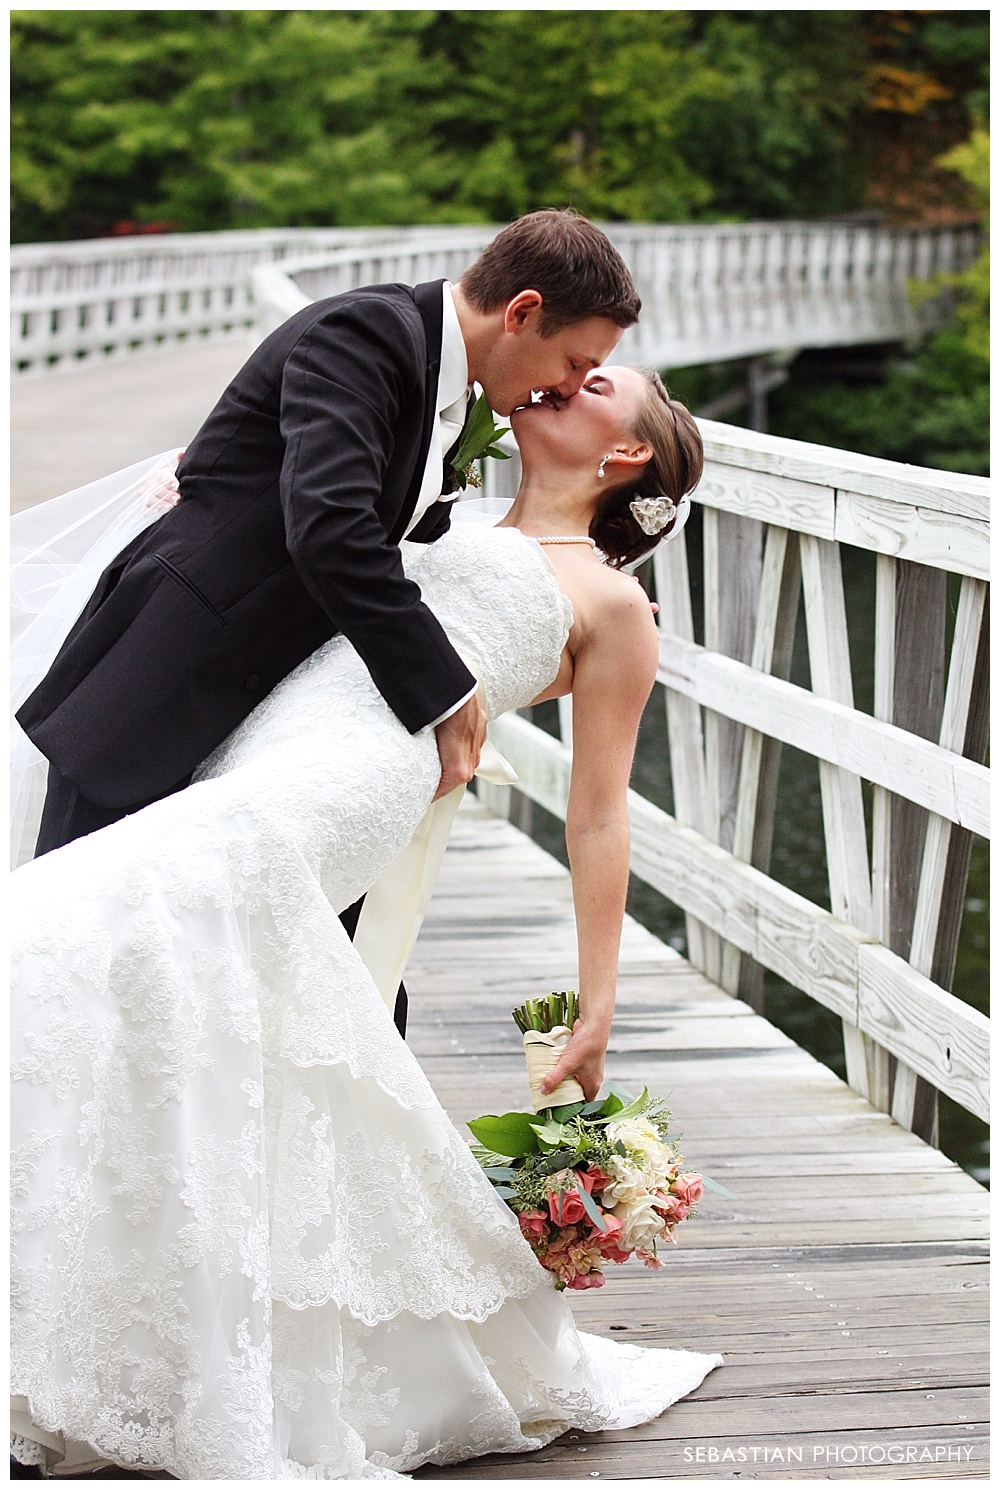 Sebastian_Photography_Studio_Wedding_Kohnle_LakeOfIsles_39.jpg